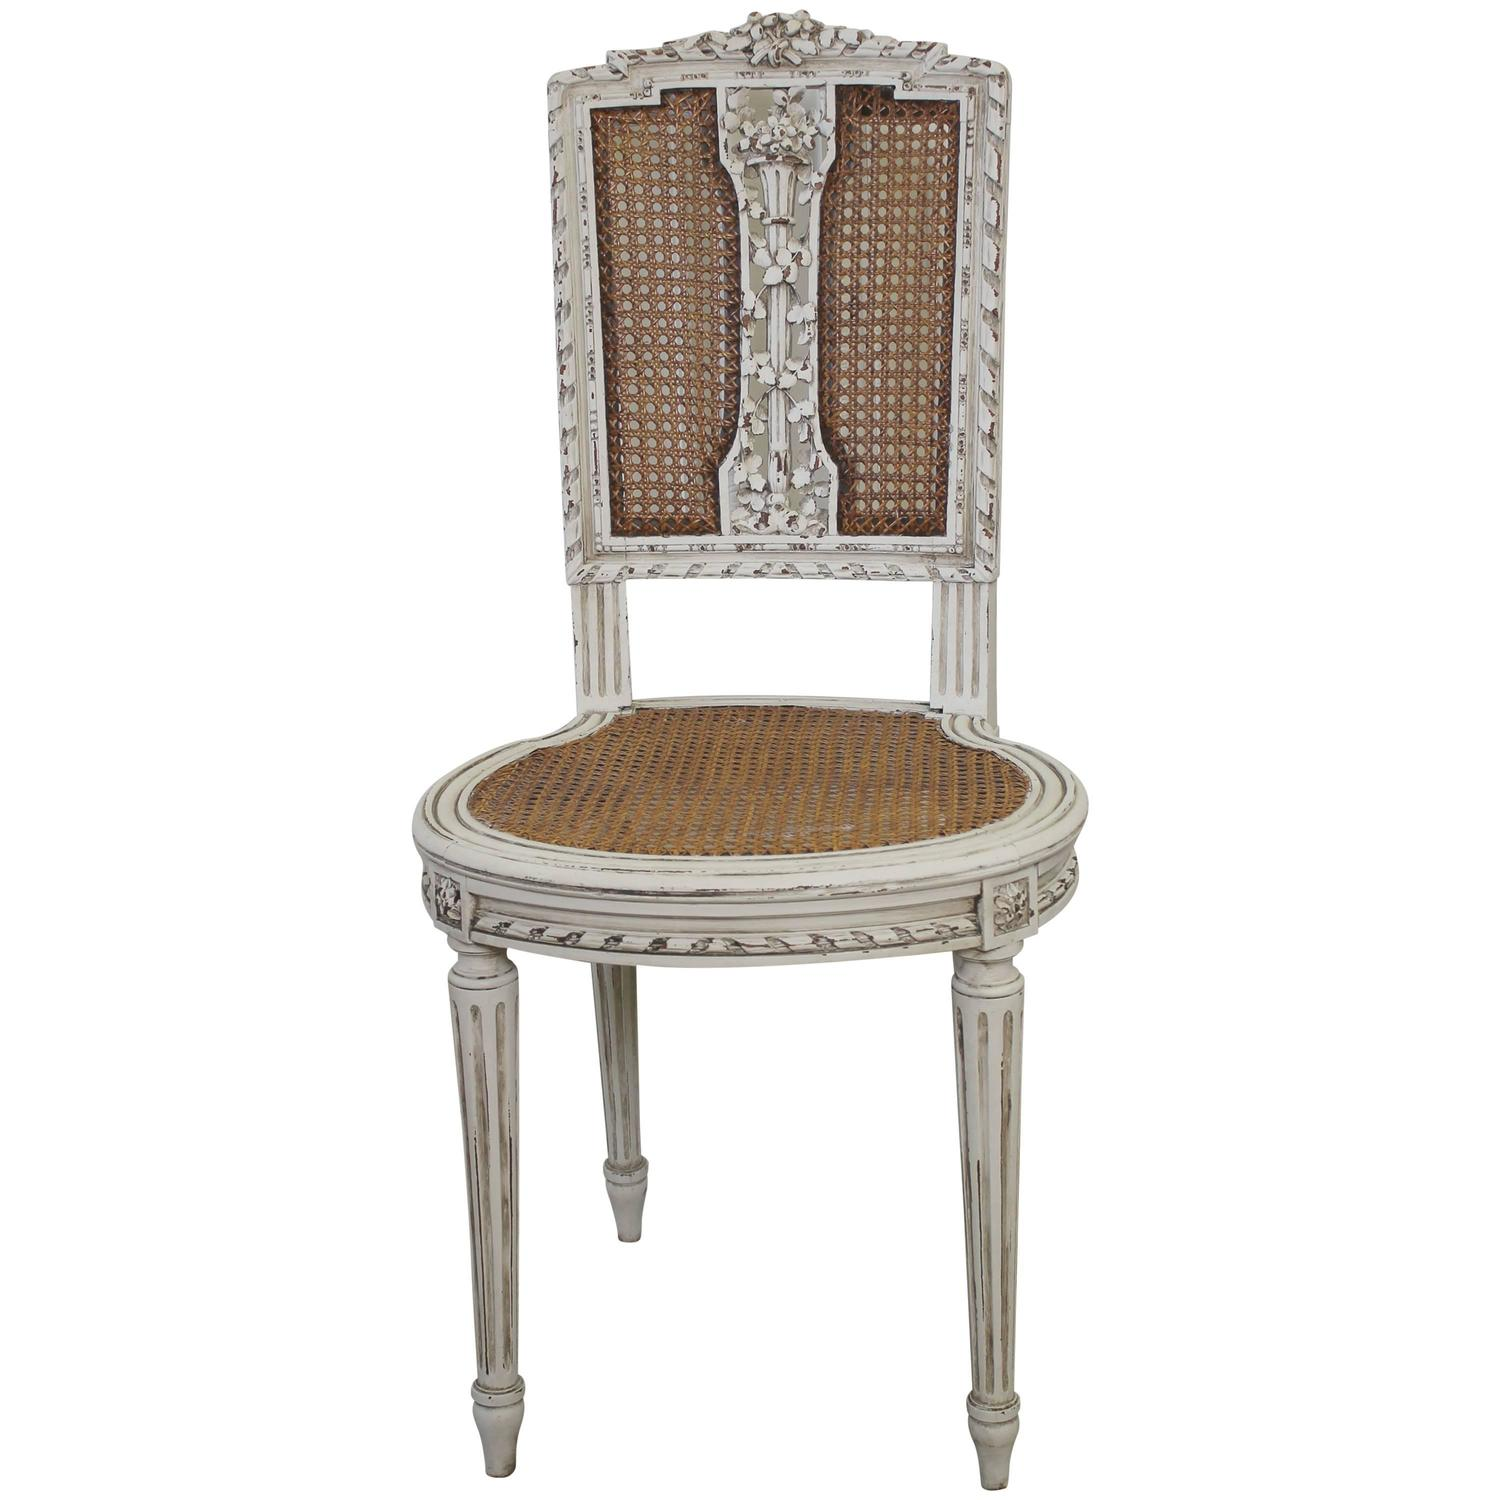 cane back chairs antique office chair craigslist louis xvi vanity at 1stdibs